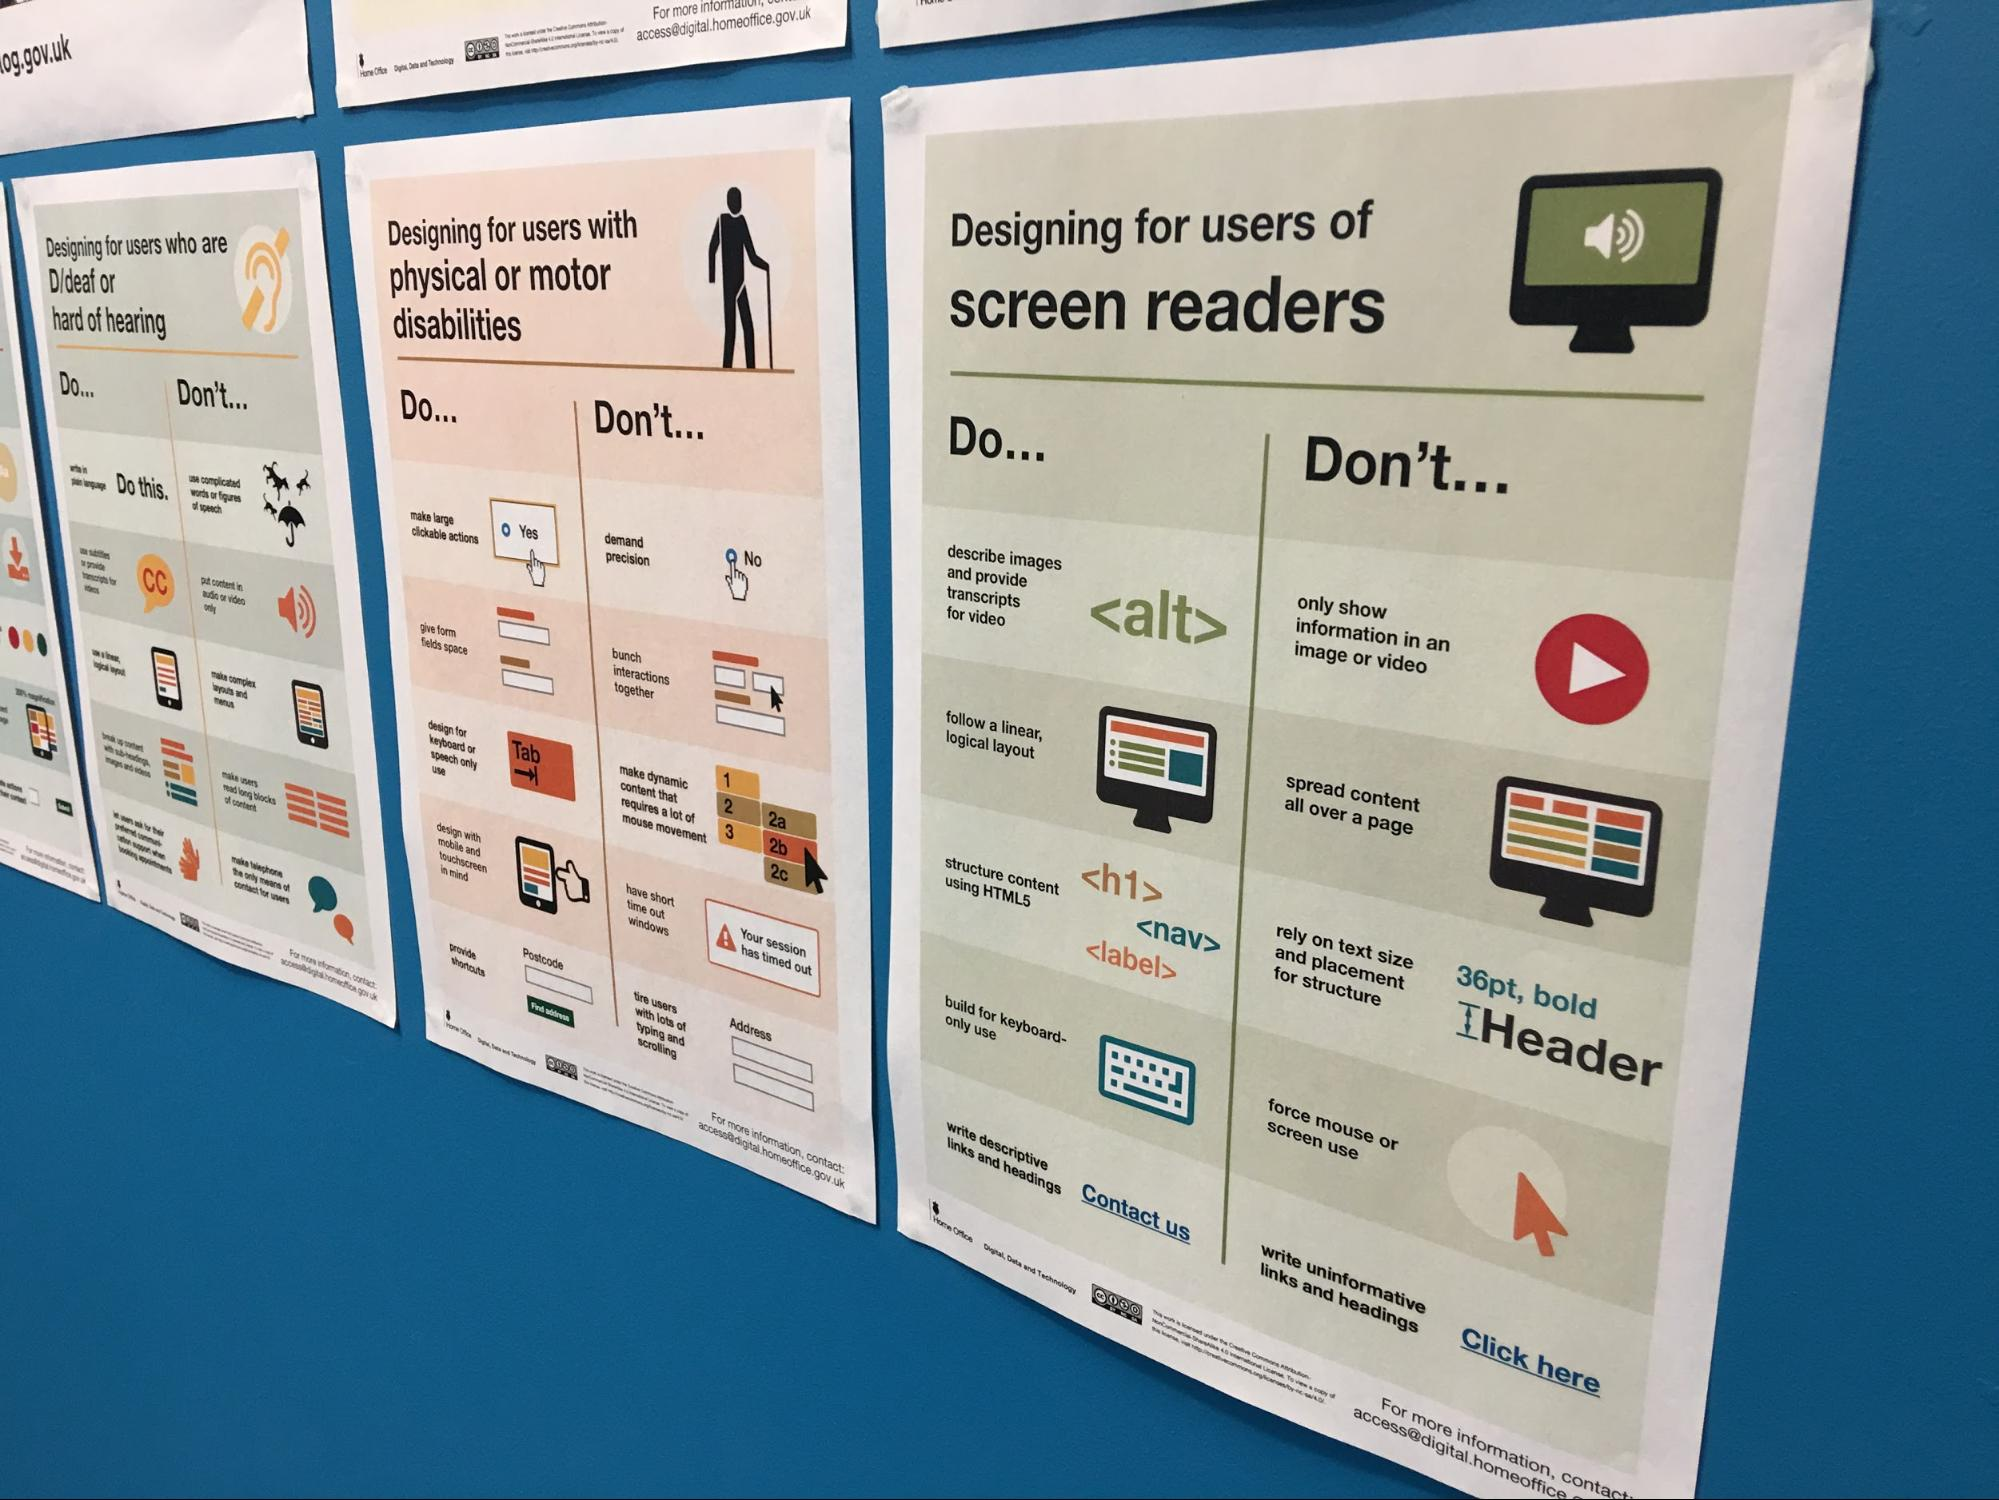 A poster showing a series of do's and don'ts - these are too small to be read properly